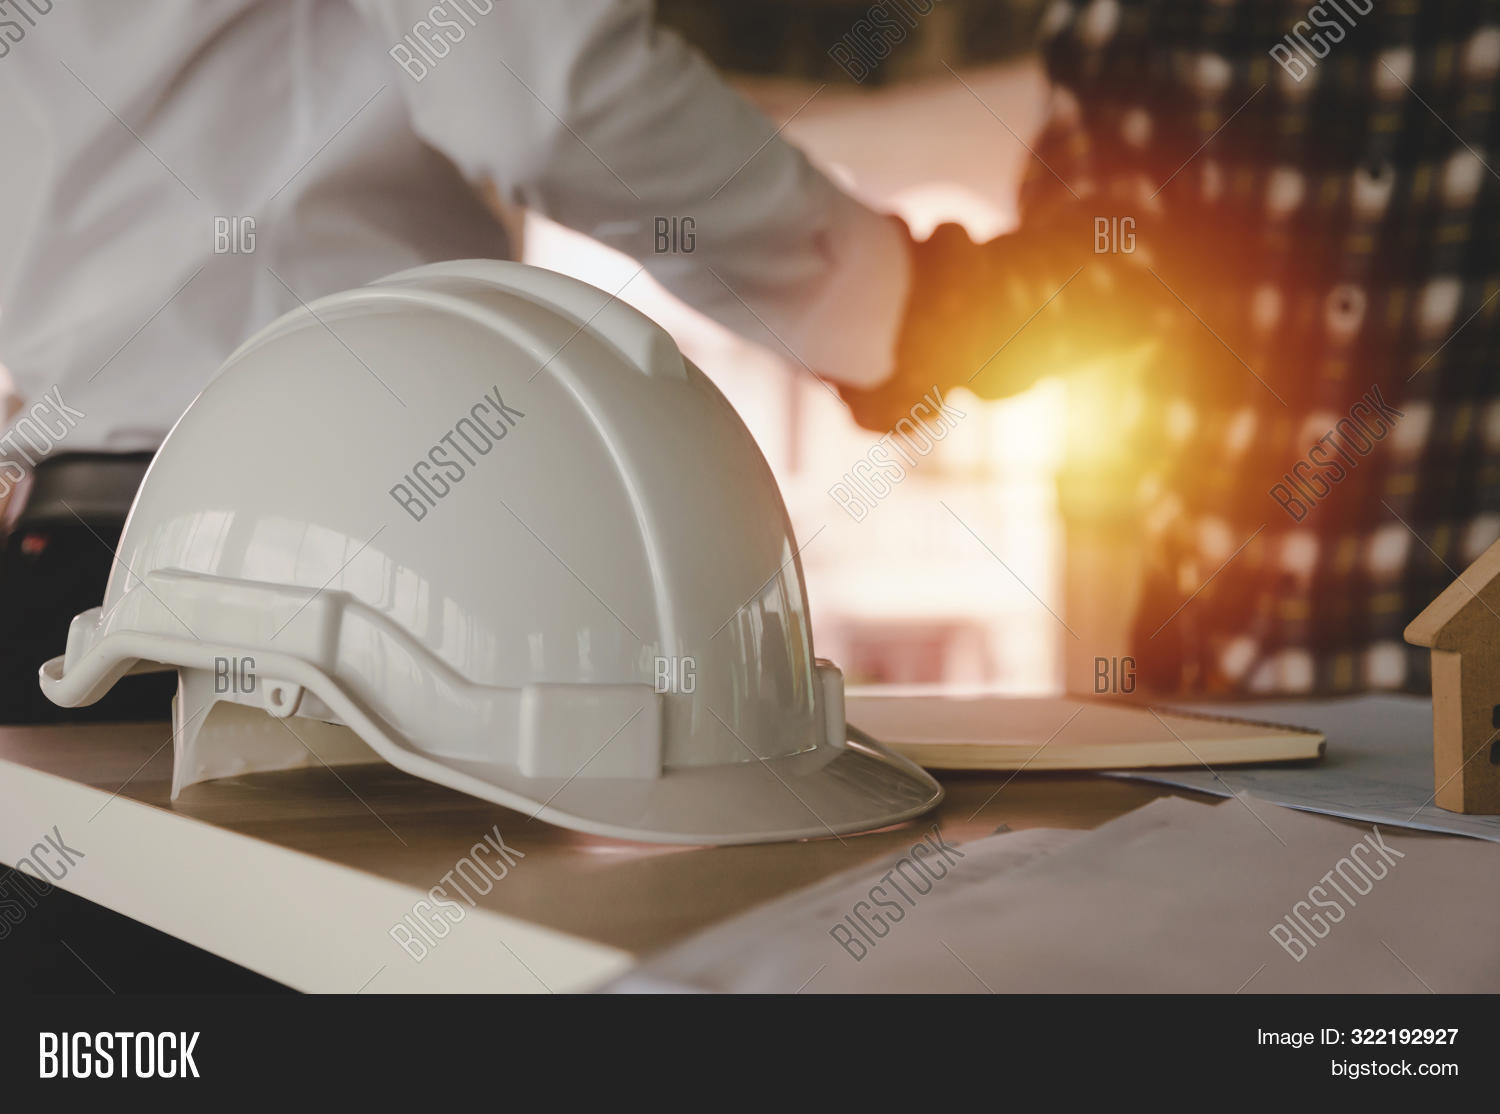 Construction Worker Team Hands Shaking Greeting Start Up Plan New Project Contract Behind White Safe